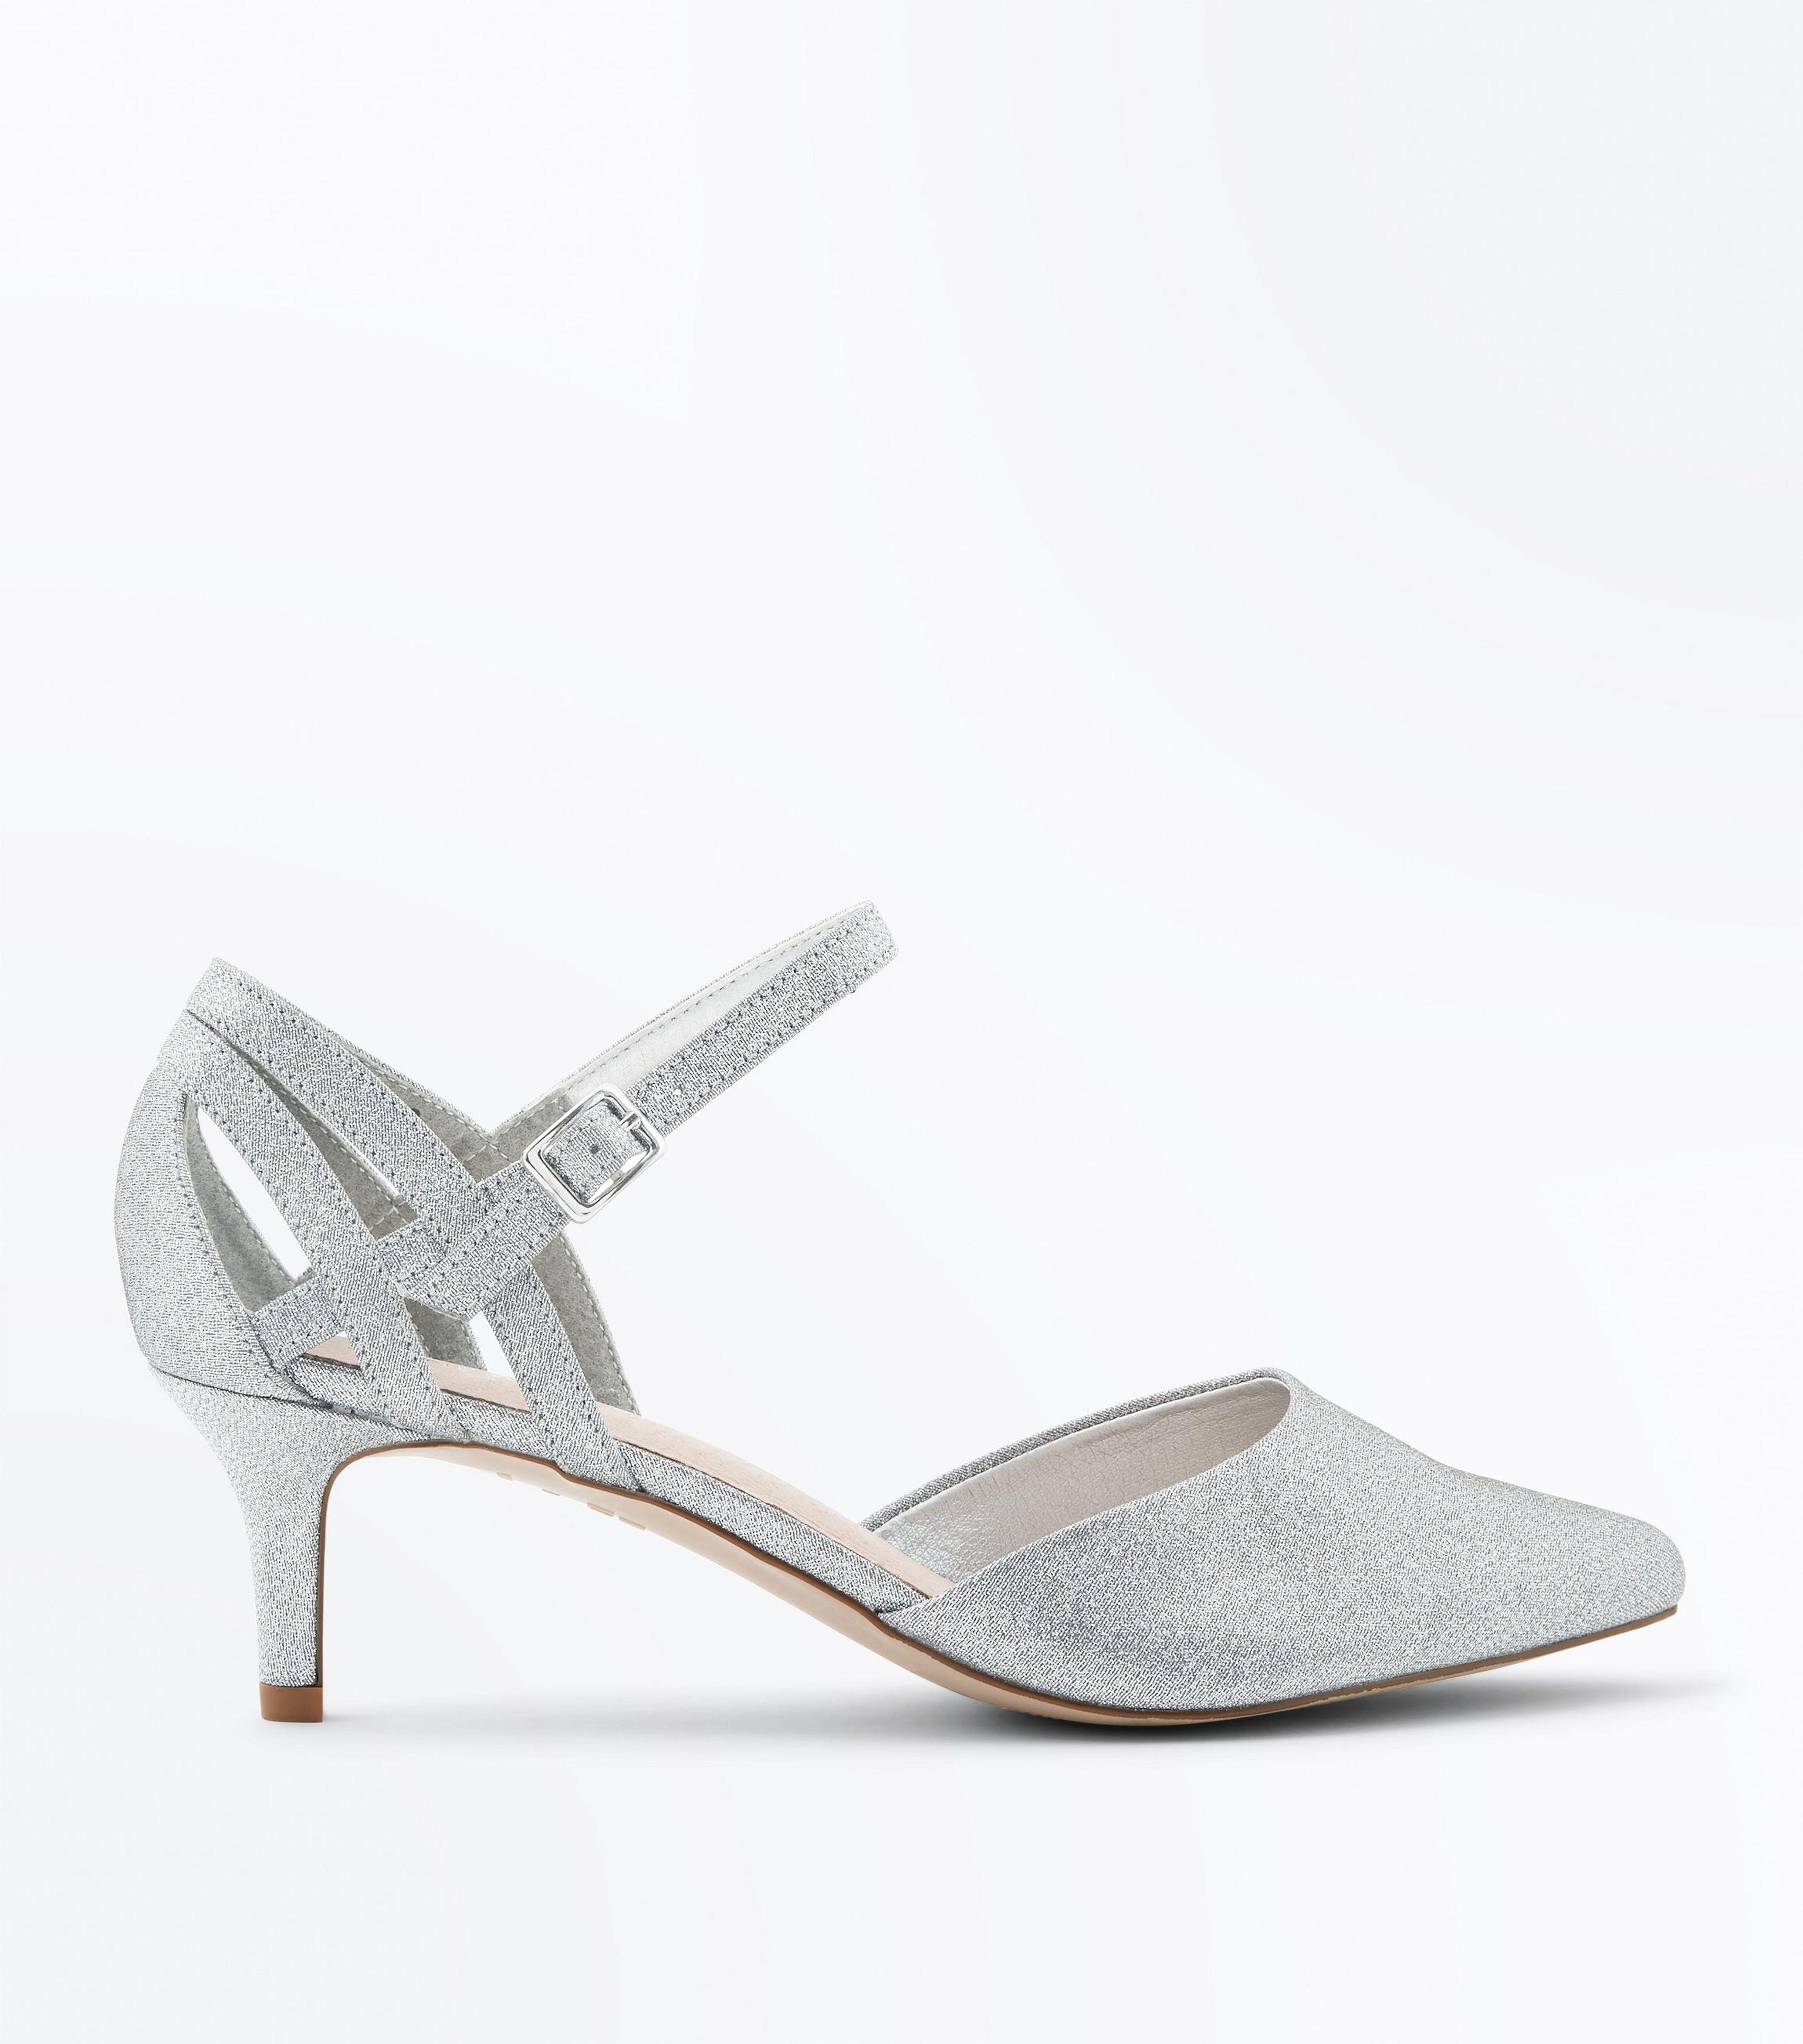 fa7d7bf3b701 New Look Wide Fit Silver Comfort Flex Shimmer Pointed Kitten Heels ...